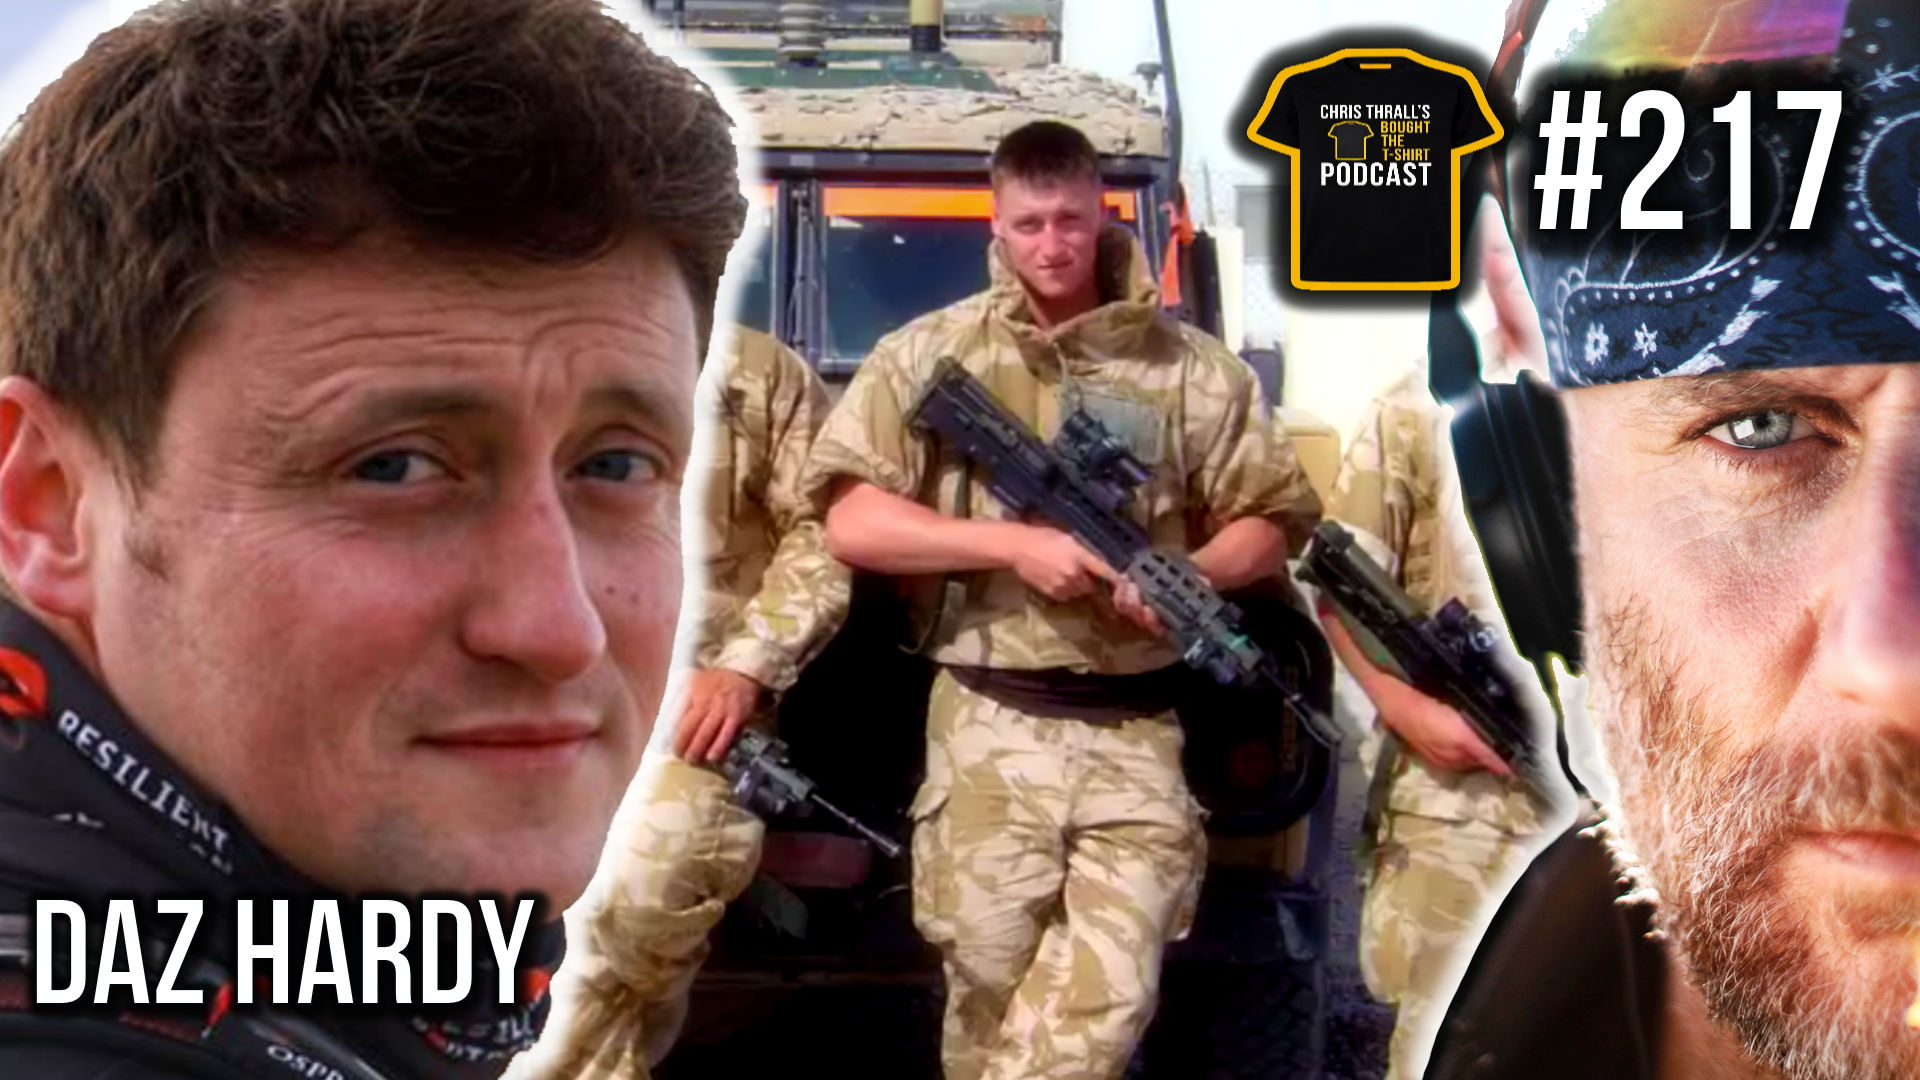 I PULLED A BMW For TWO Days! | British Army Legend | Podcast #217